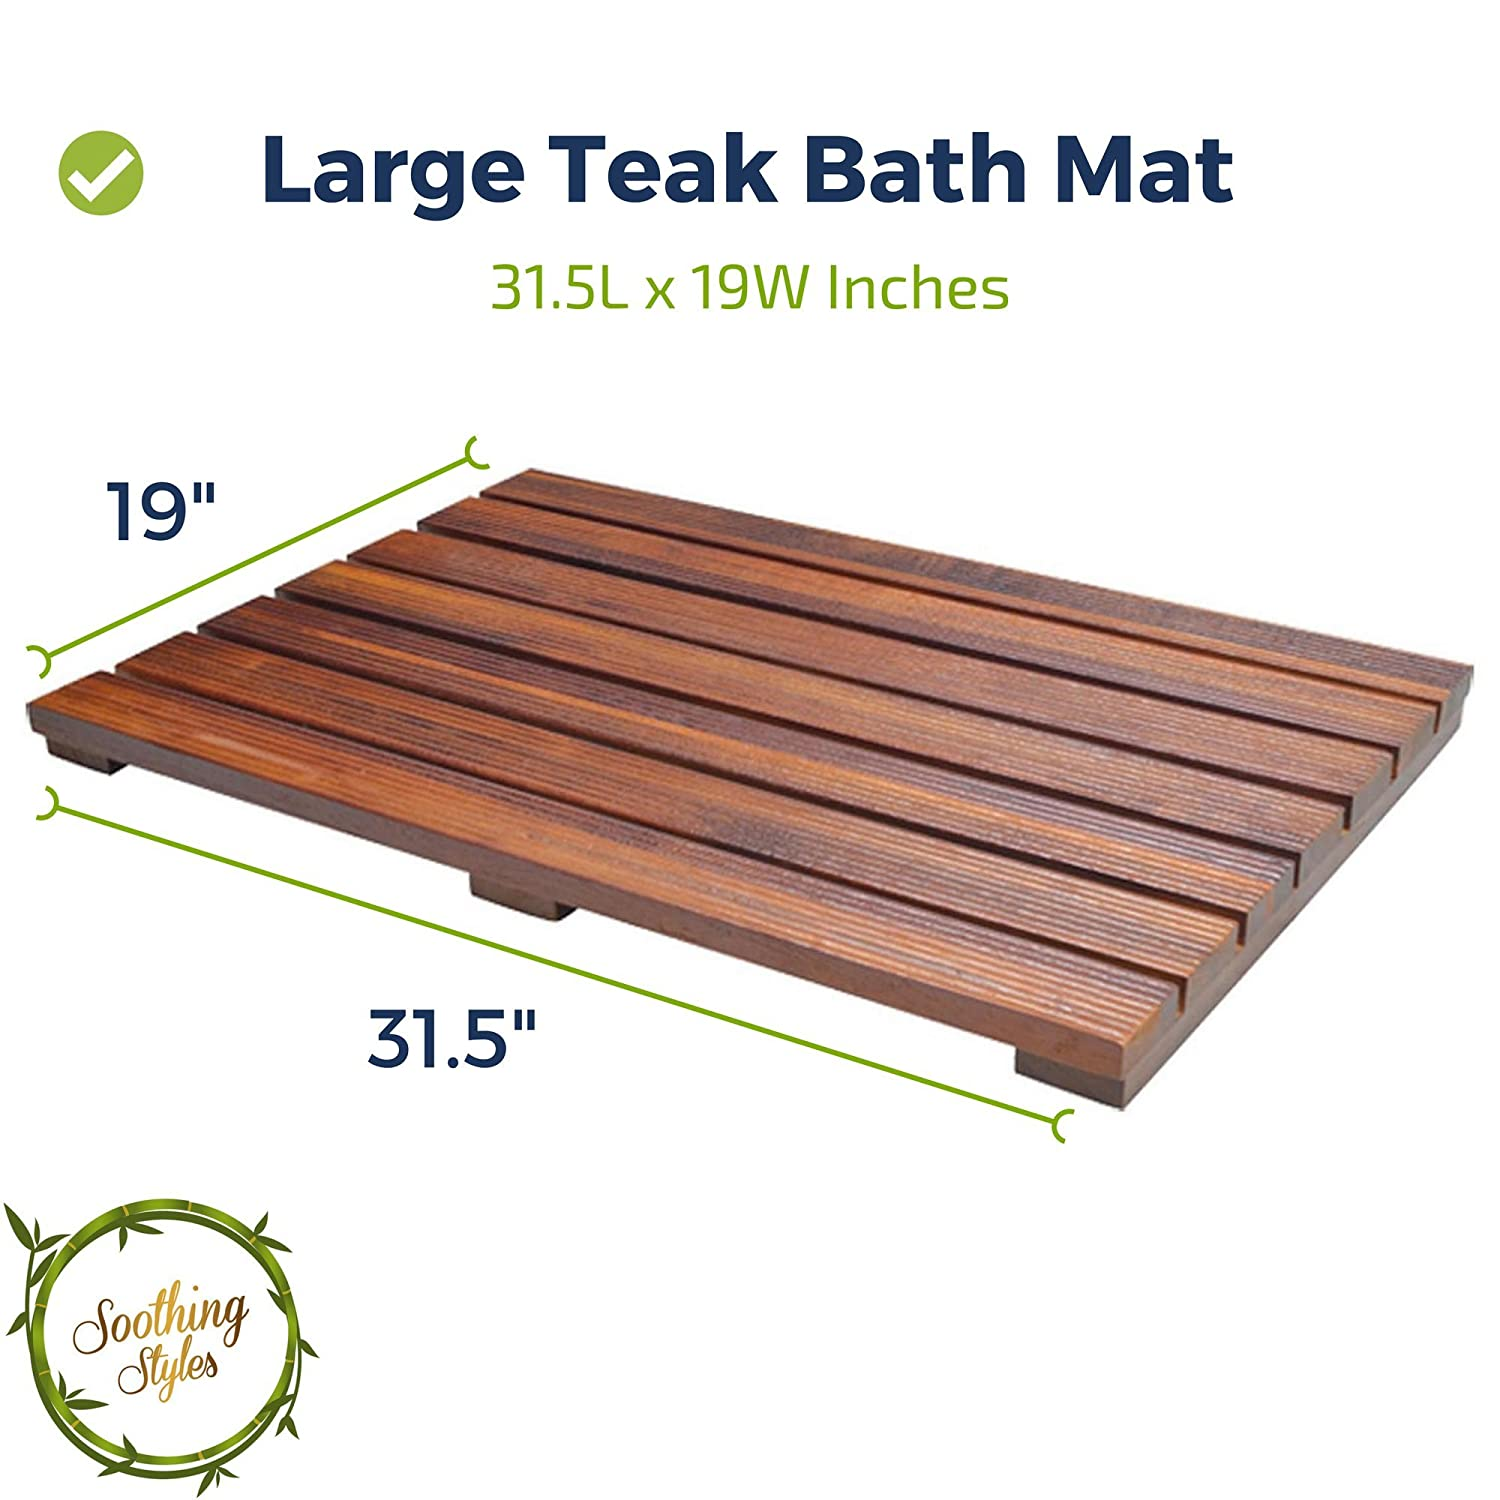 sub bathroom ways damp a spa replace sitting relax more expensive its bath one your filth currently fancy emilyshwake make organized together hacks the buzz to look mat nice is hella own string cheap clean teak cloth in soothing that